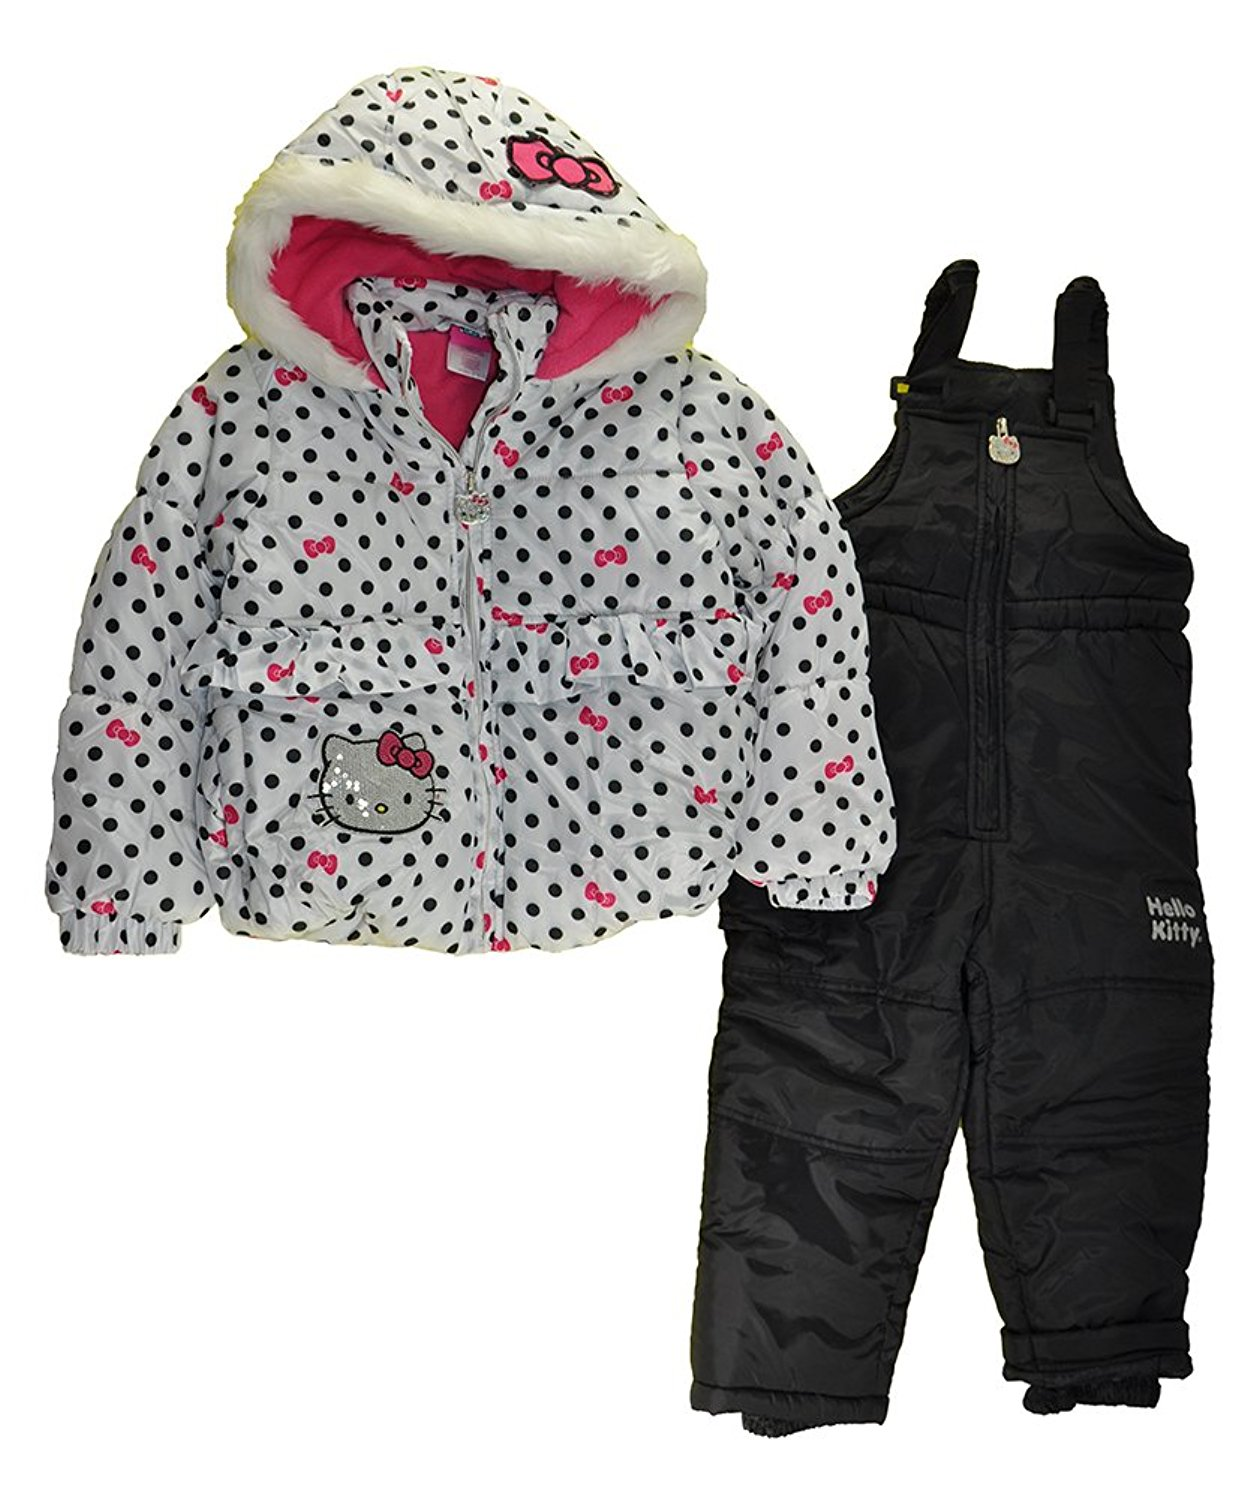 57626068b Cheap Snowsuits Girls, find Snowsuits Girls deals on line at Alibaba.com